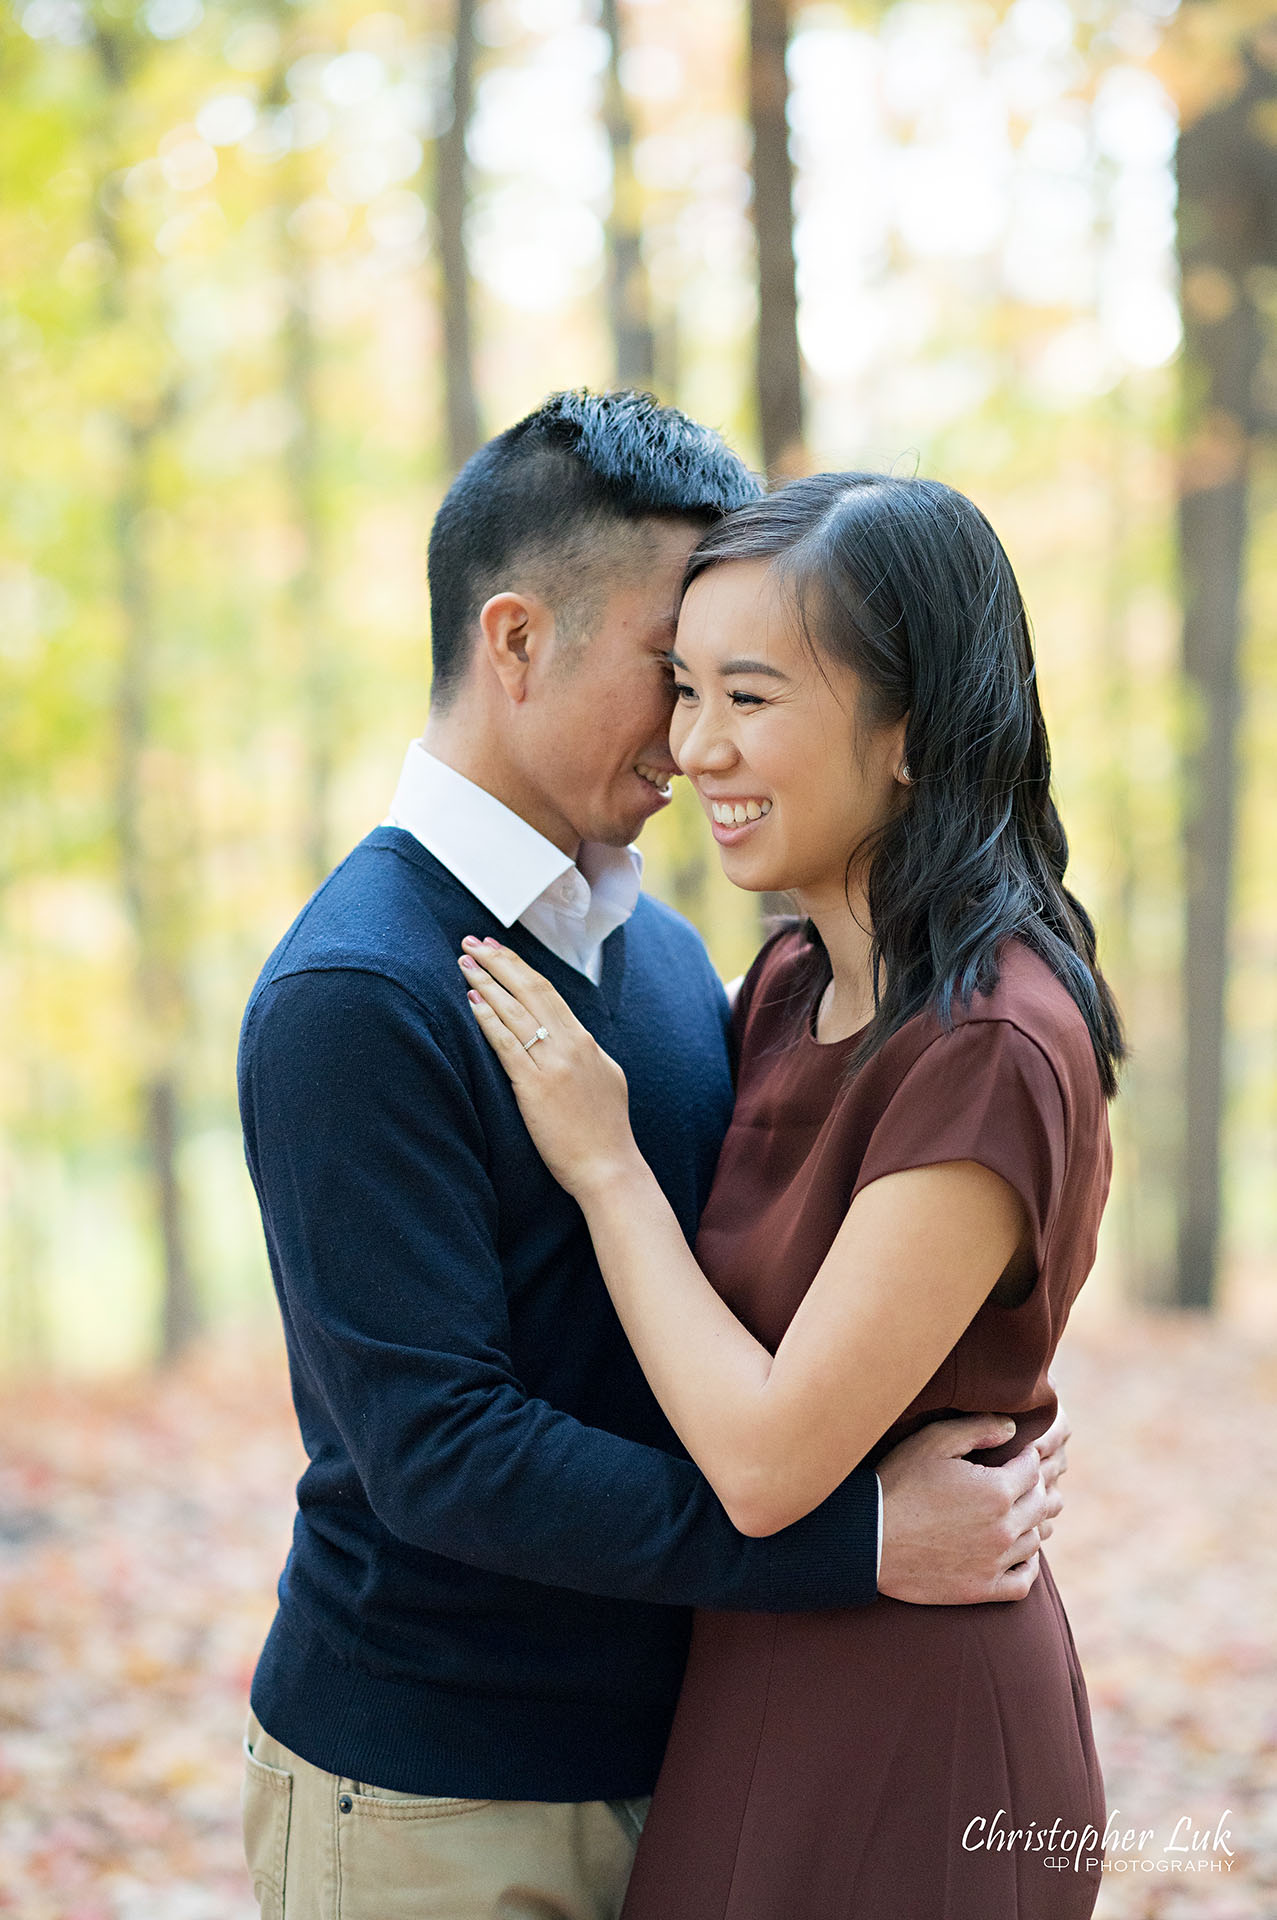 Christopher Luk Toronto Wedding Engagement Session Photographer Autumn Fall Leaves Natural Candid Photojournalistic Bride Groom Hiking Trail Trees Smiling Hug Hugging Each Other Happy Together